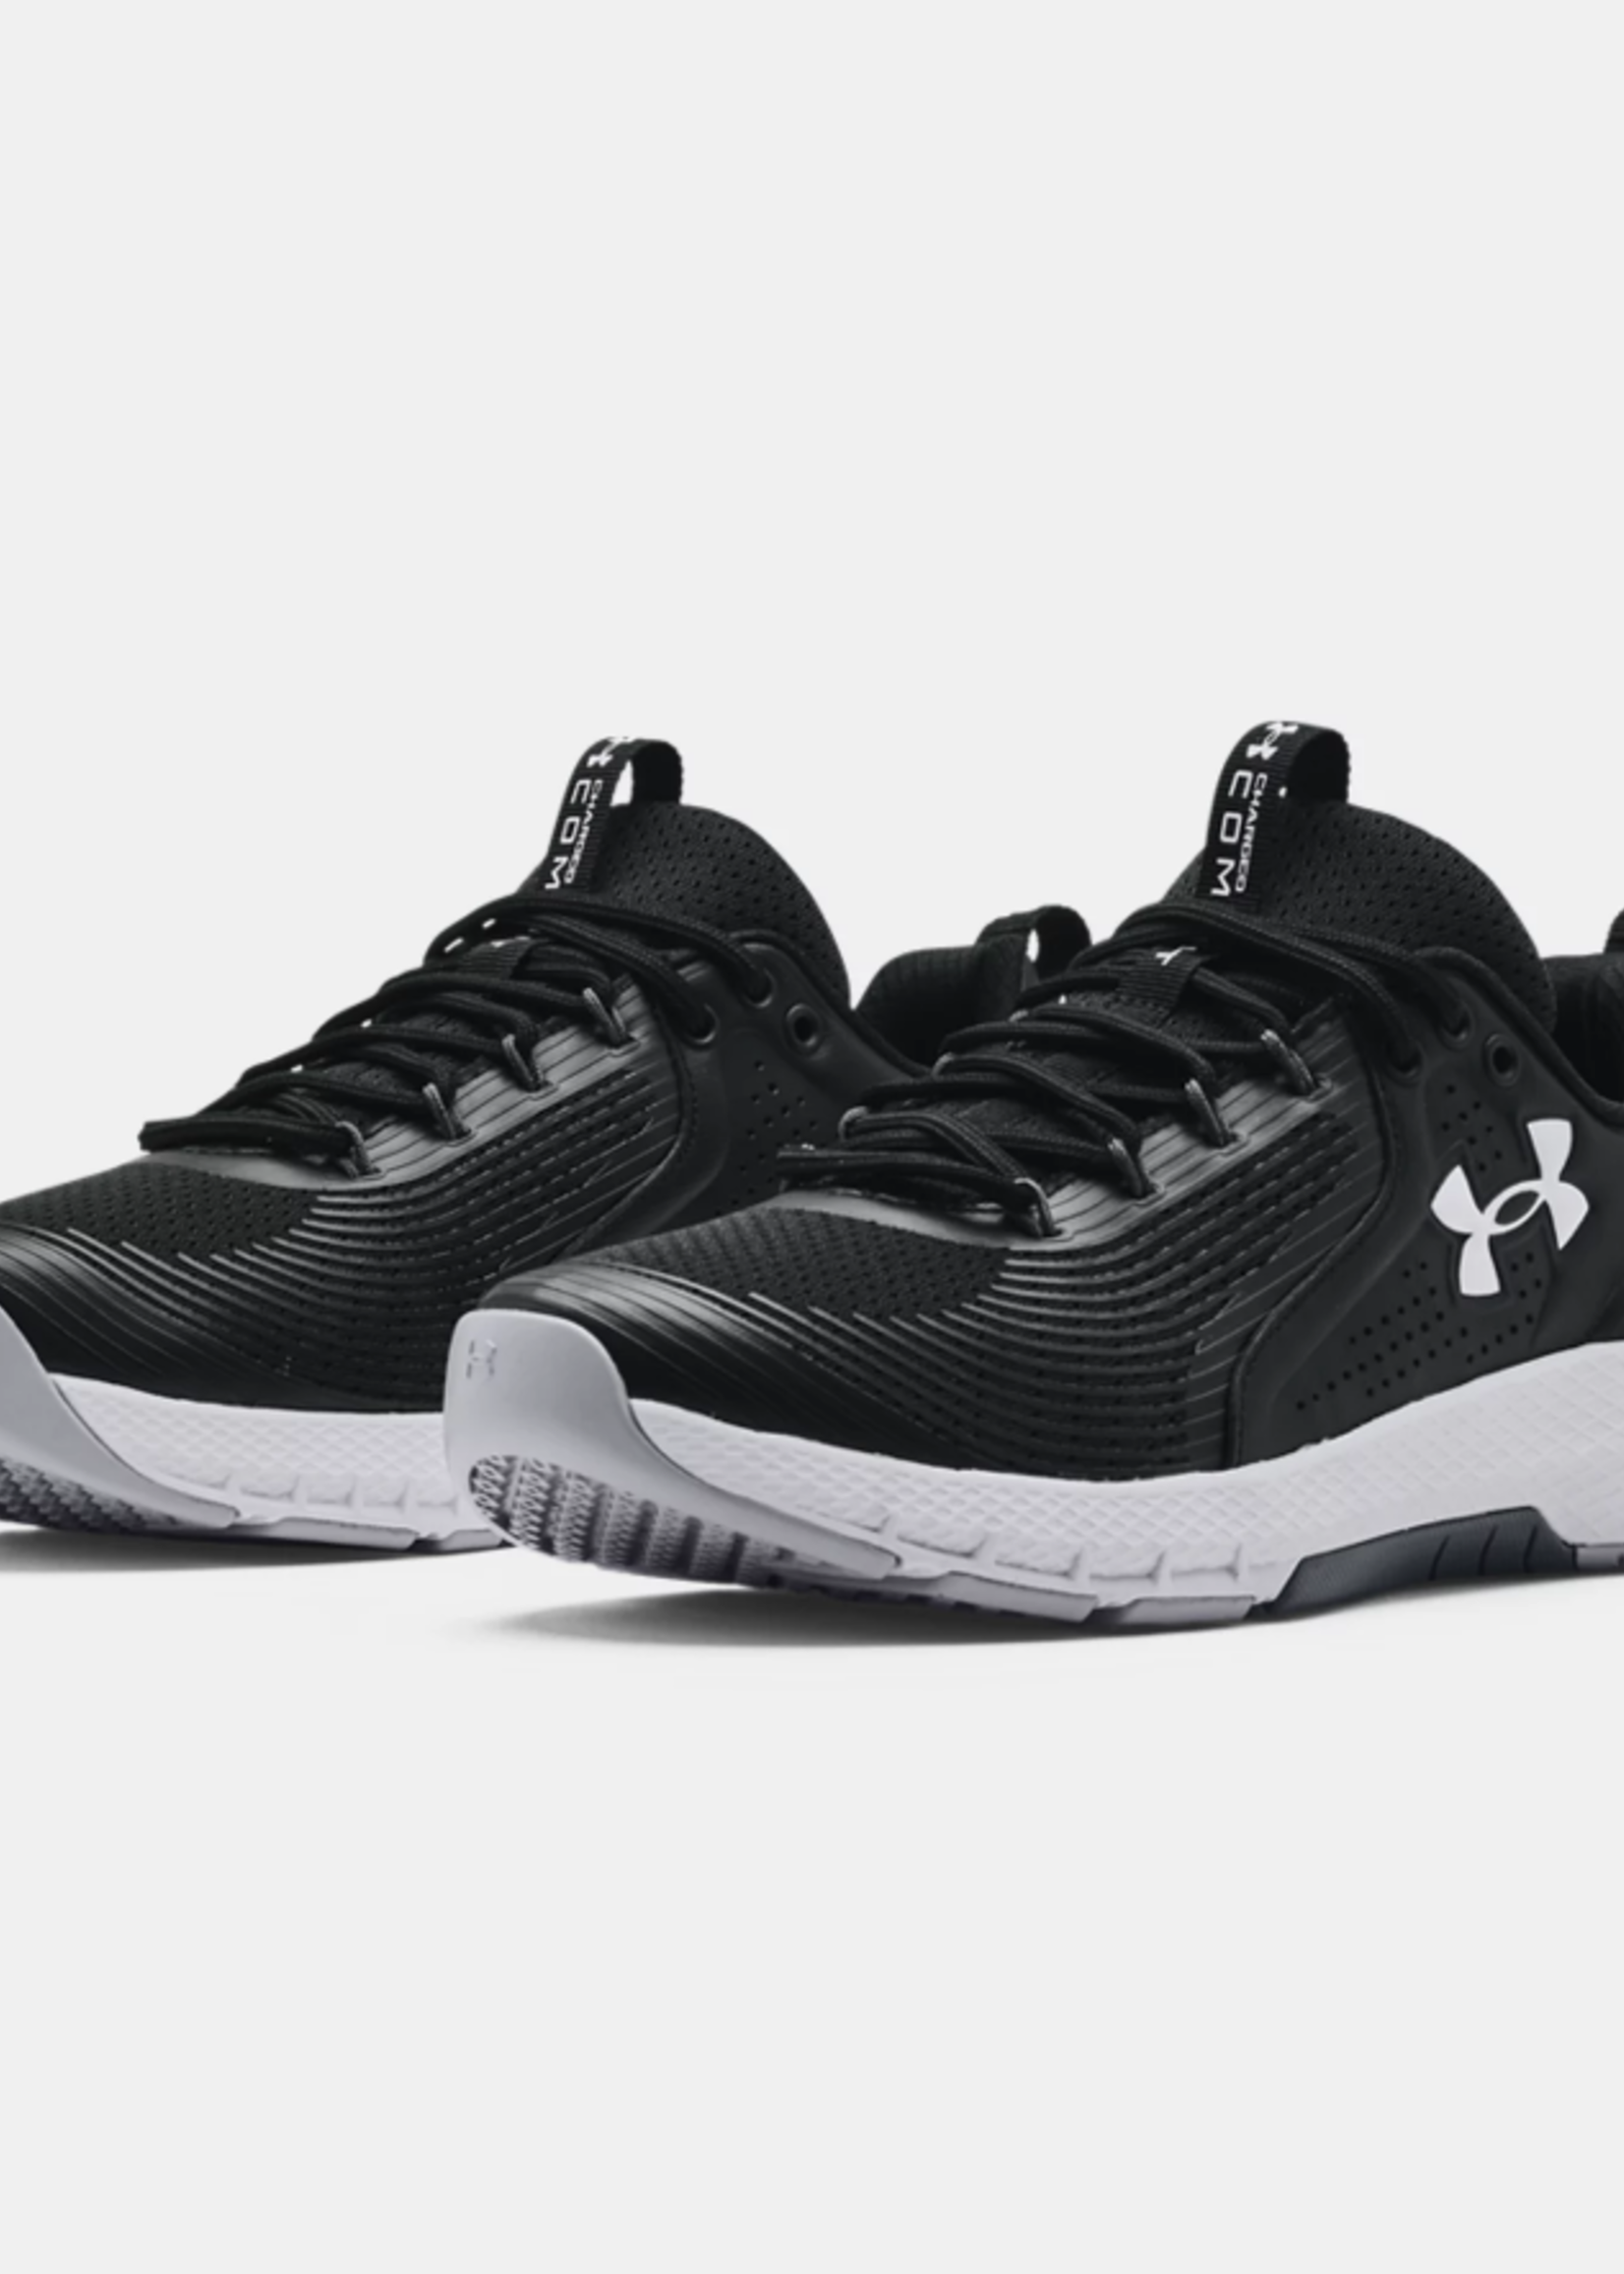 Under Armour MEN'S UA CHARGED COMMIT TR 3 TRAINING SHOES 3023703